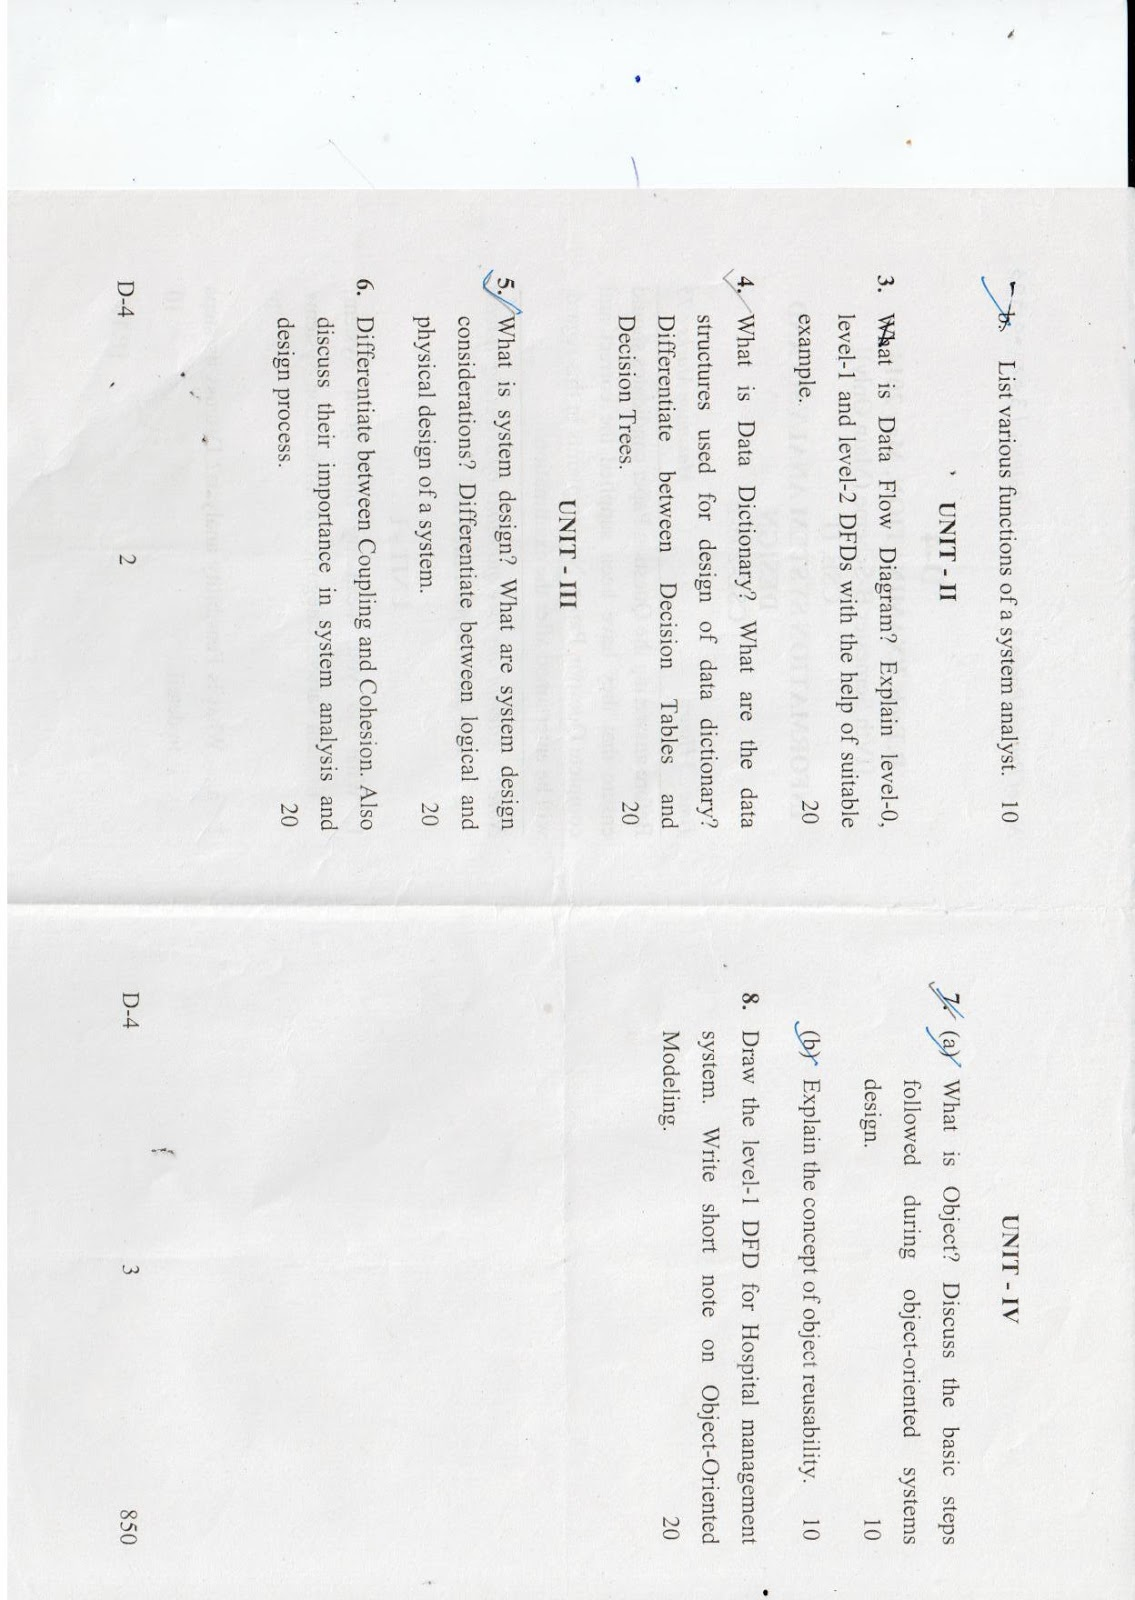 Information System Analysis And Design Question Paper Cse 208 B B Tech